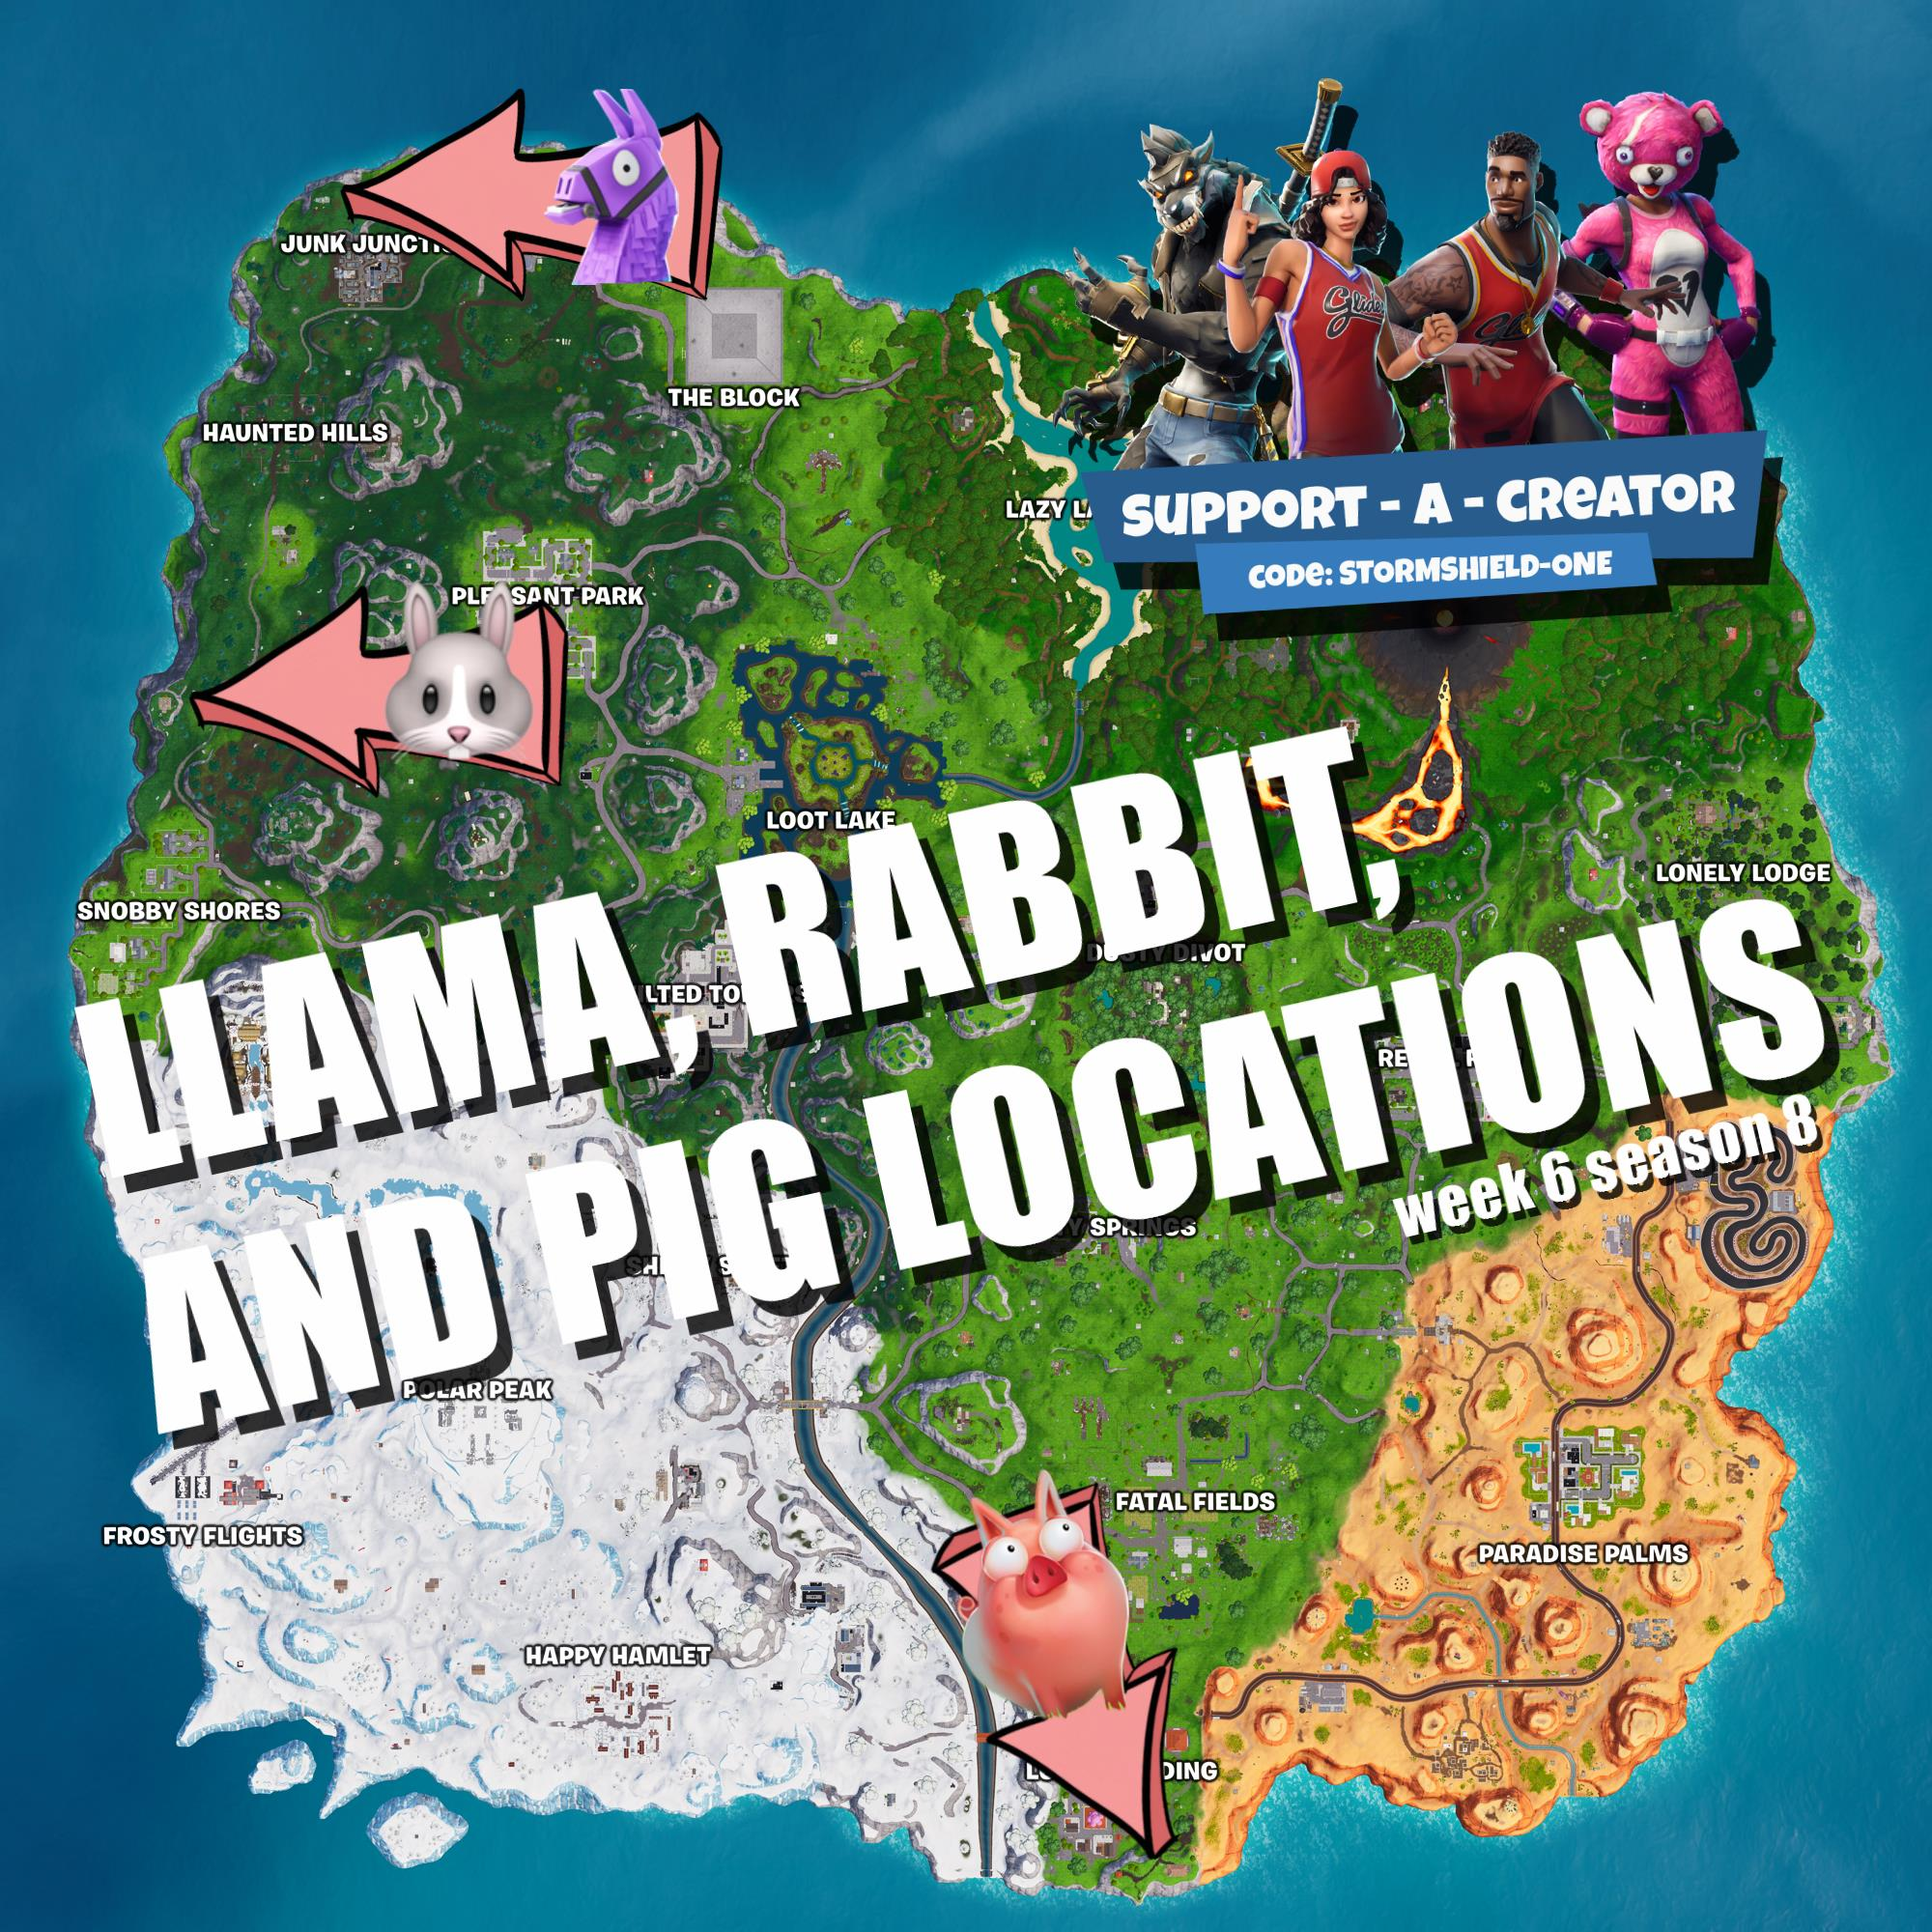 Fortnite Season 8 Week 6 Highest Elevations Knife Points - visit a wooden rabbit a stone pig and a metal llama